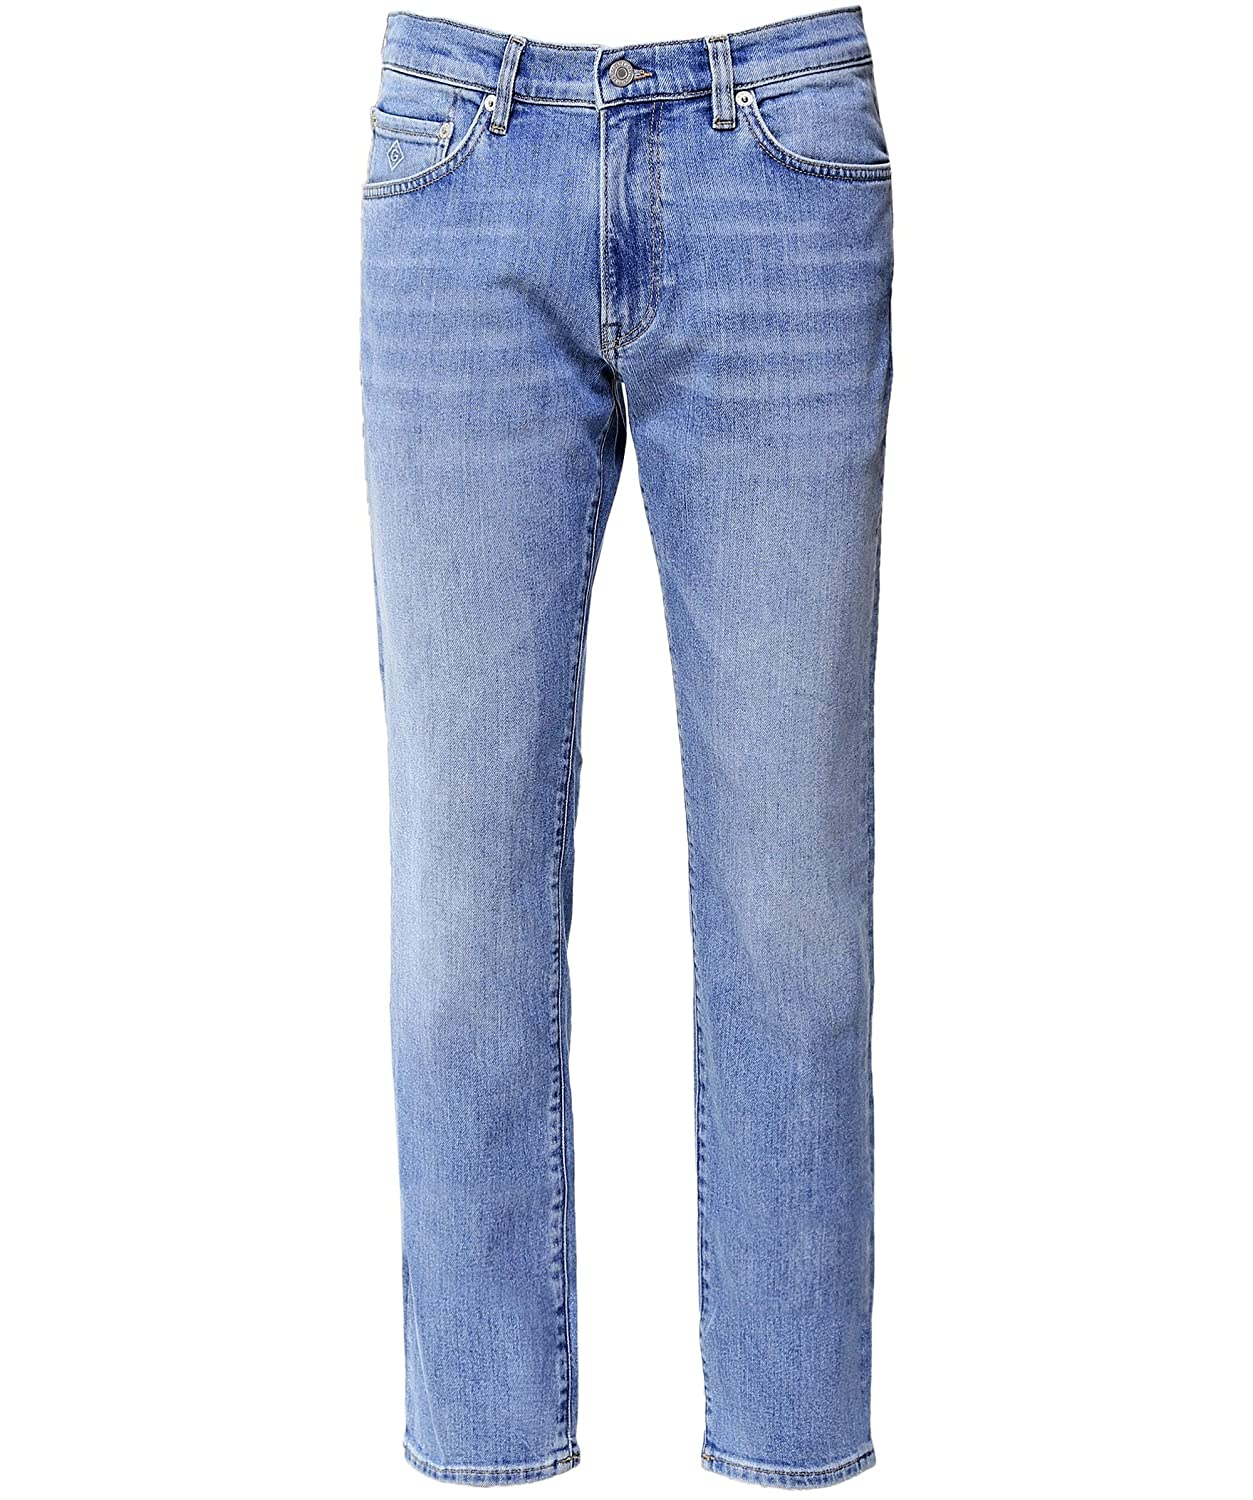 bluee Gant Men's Slim Fit Jeans bluee